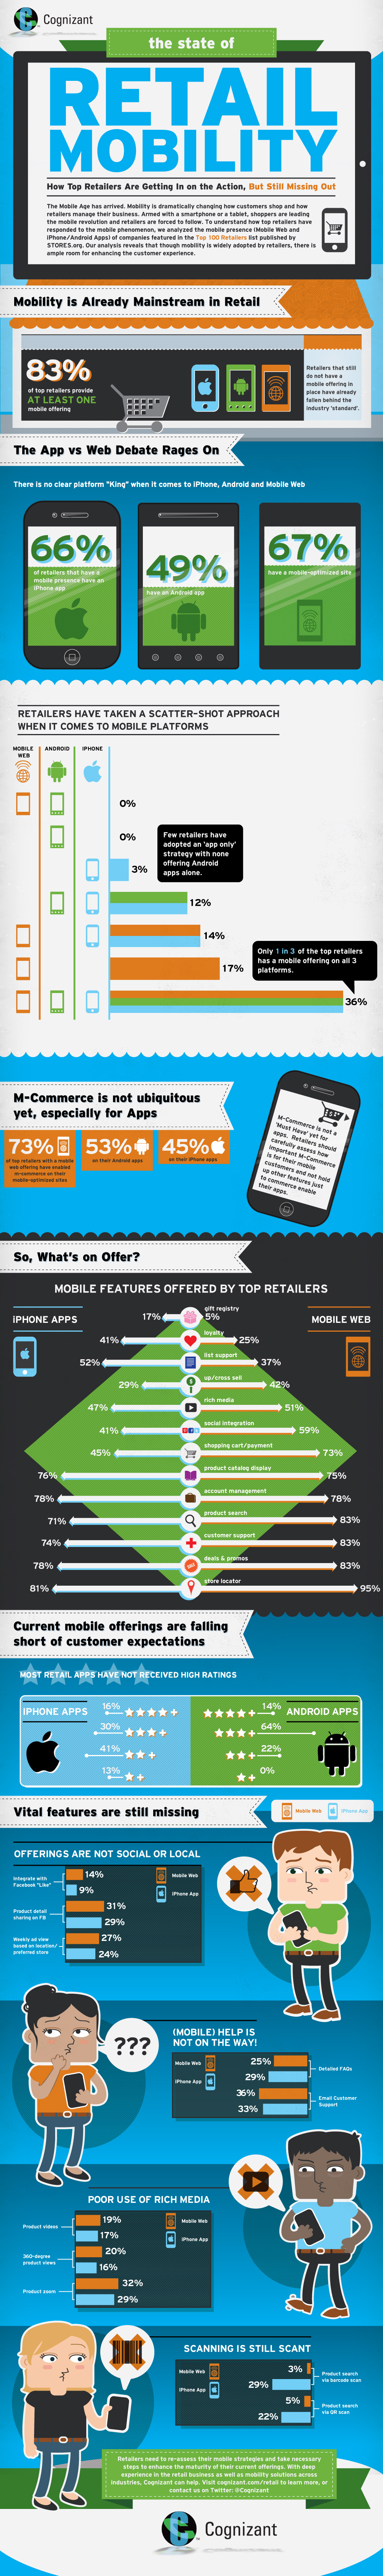 Retailing through Mobile Phones